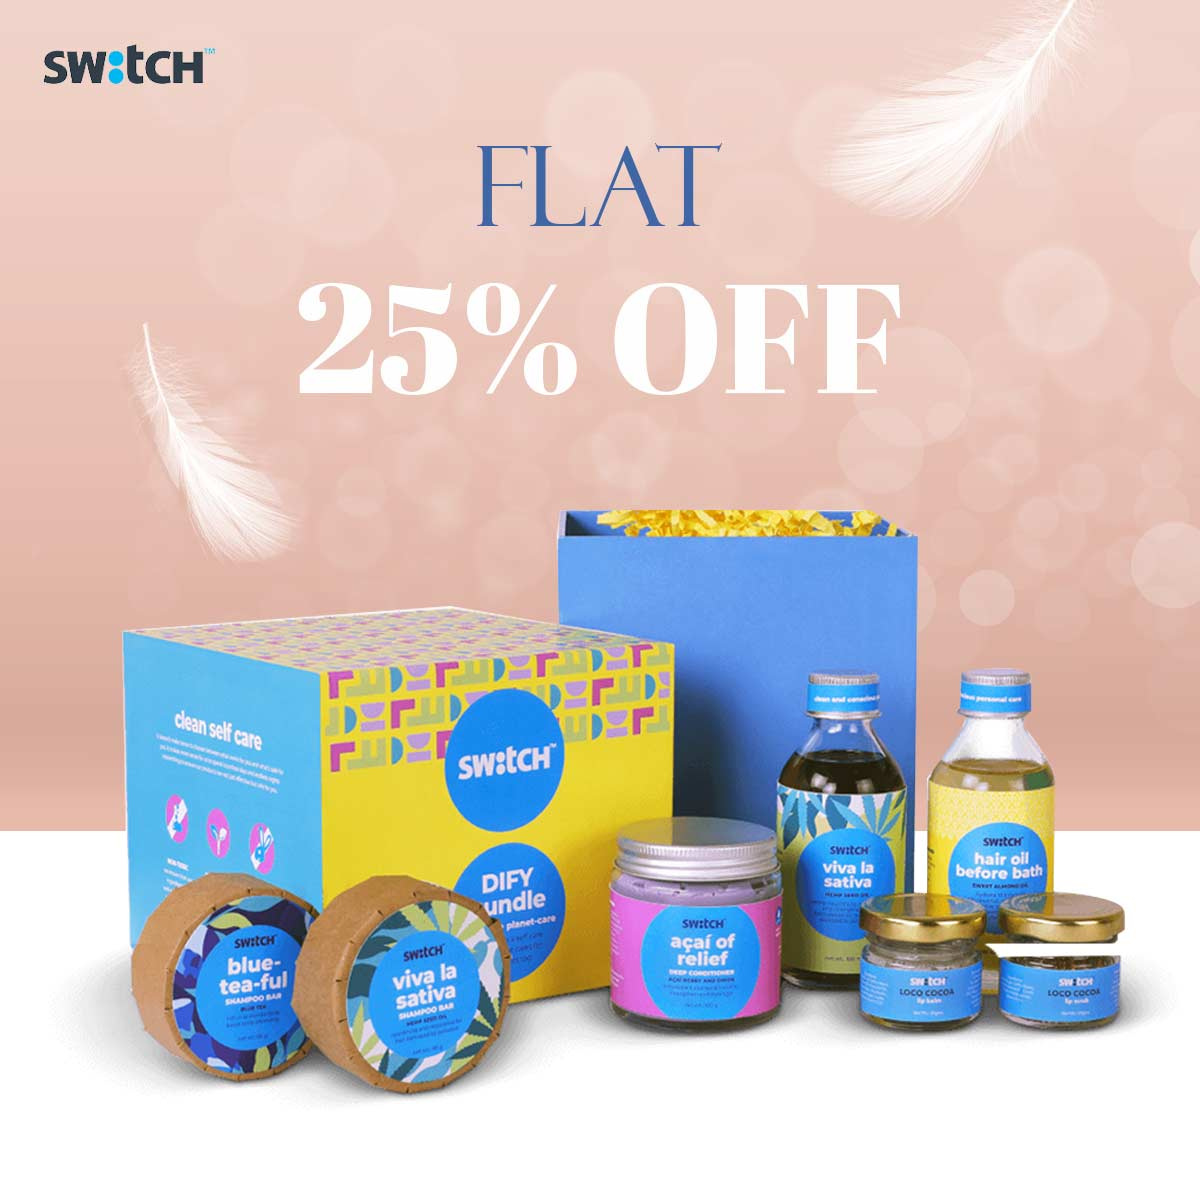 Flat 25% Off on The Switch Fix